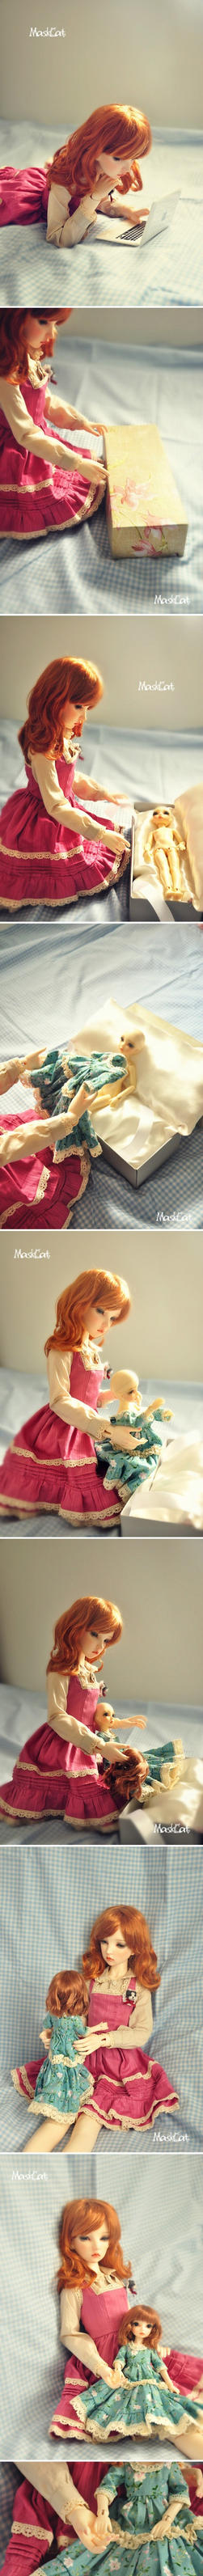 I bought a doll from MaskcatDoll by Maskcat